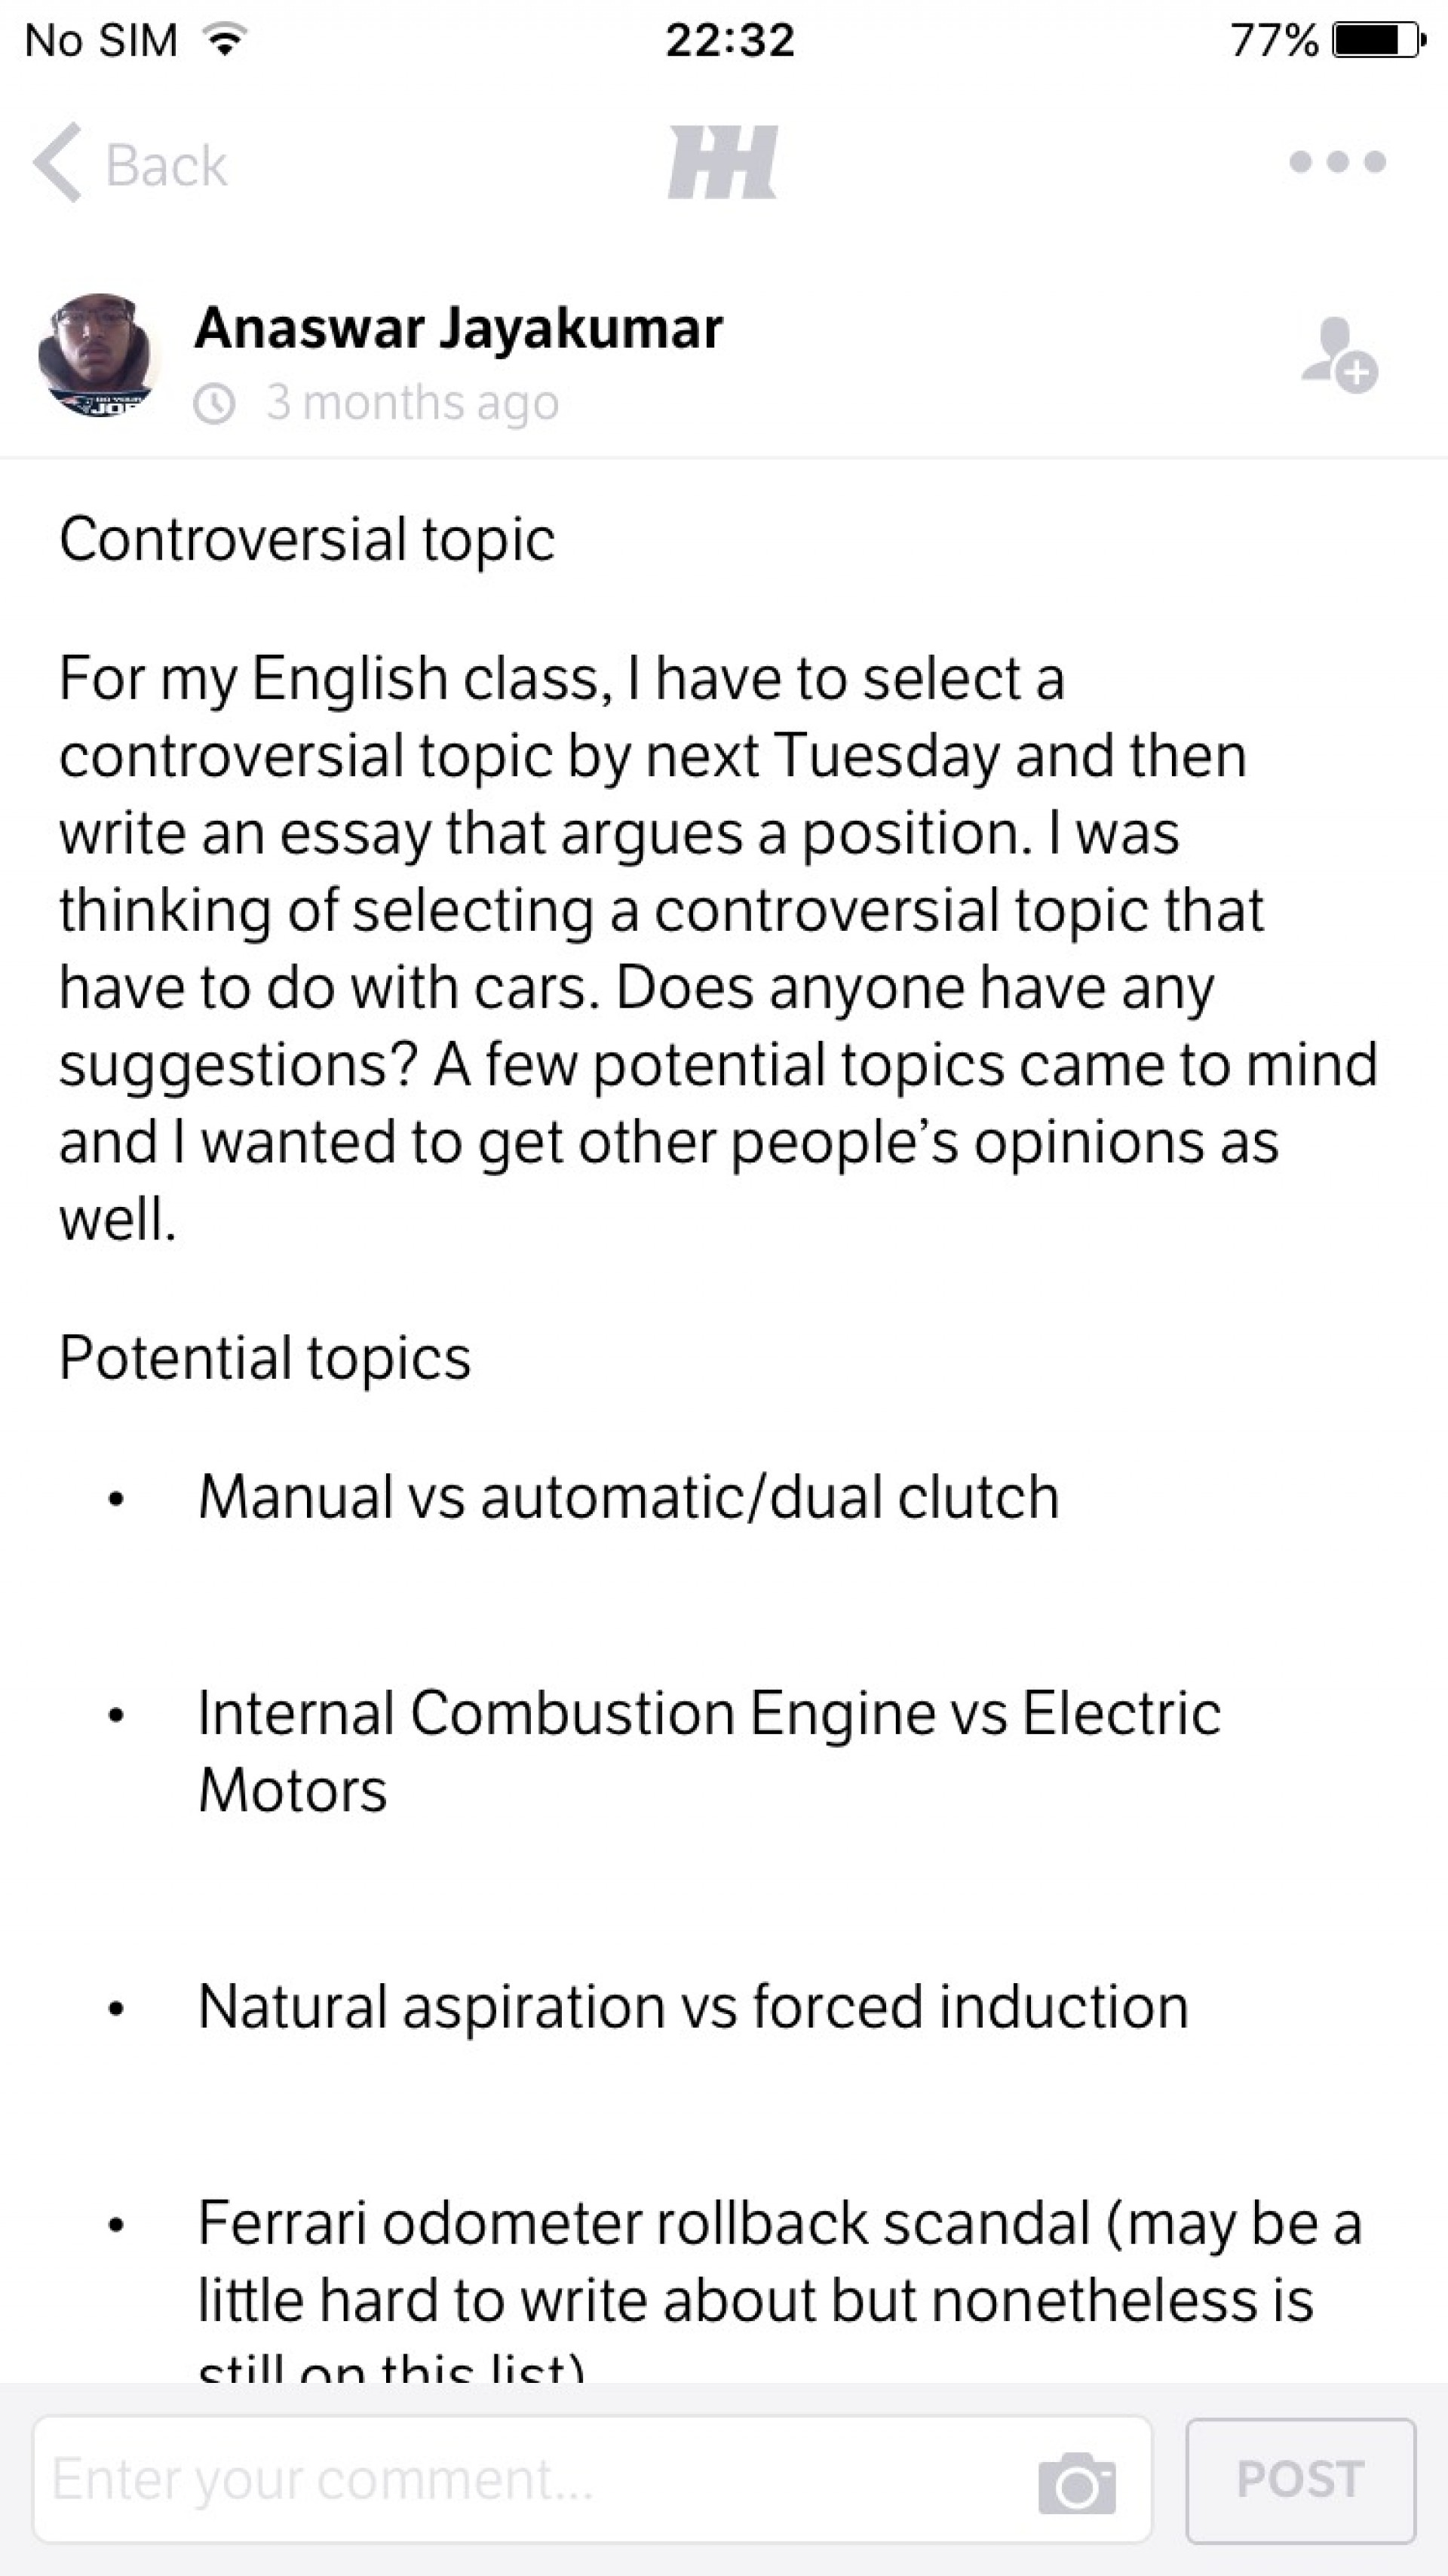 002 Research Paper Controversial Topic Essay Topics Example Outline Issue20 Middle School Phenomenal Questions Science Civil War 1920